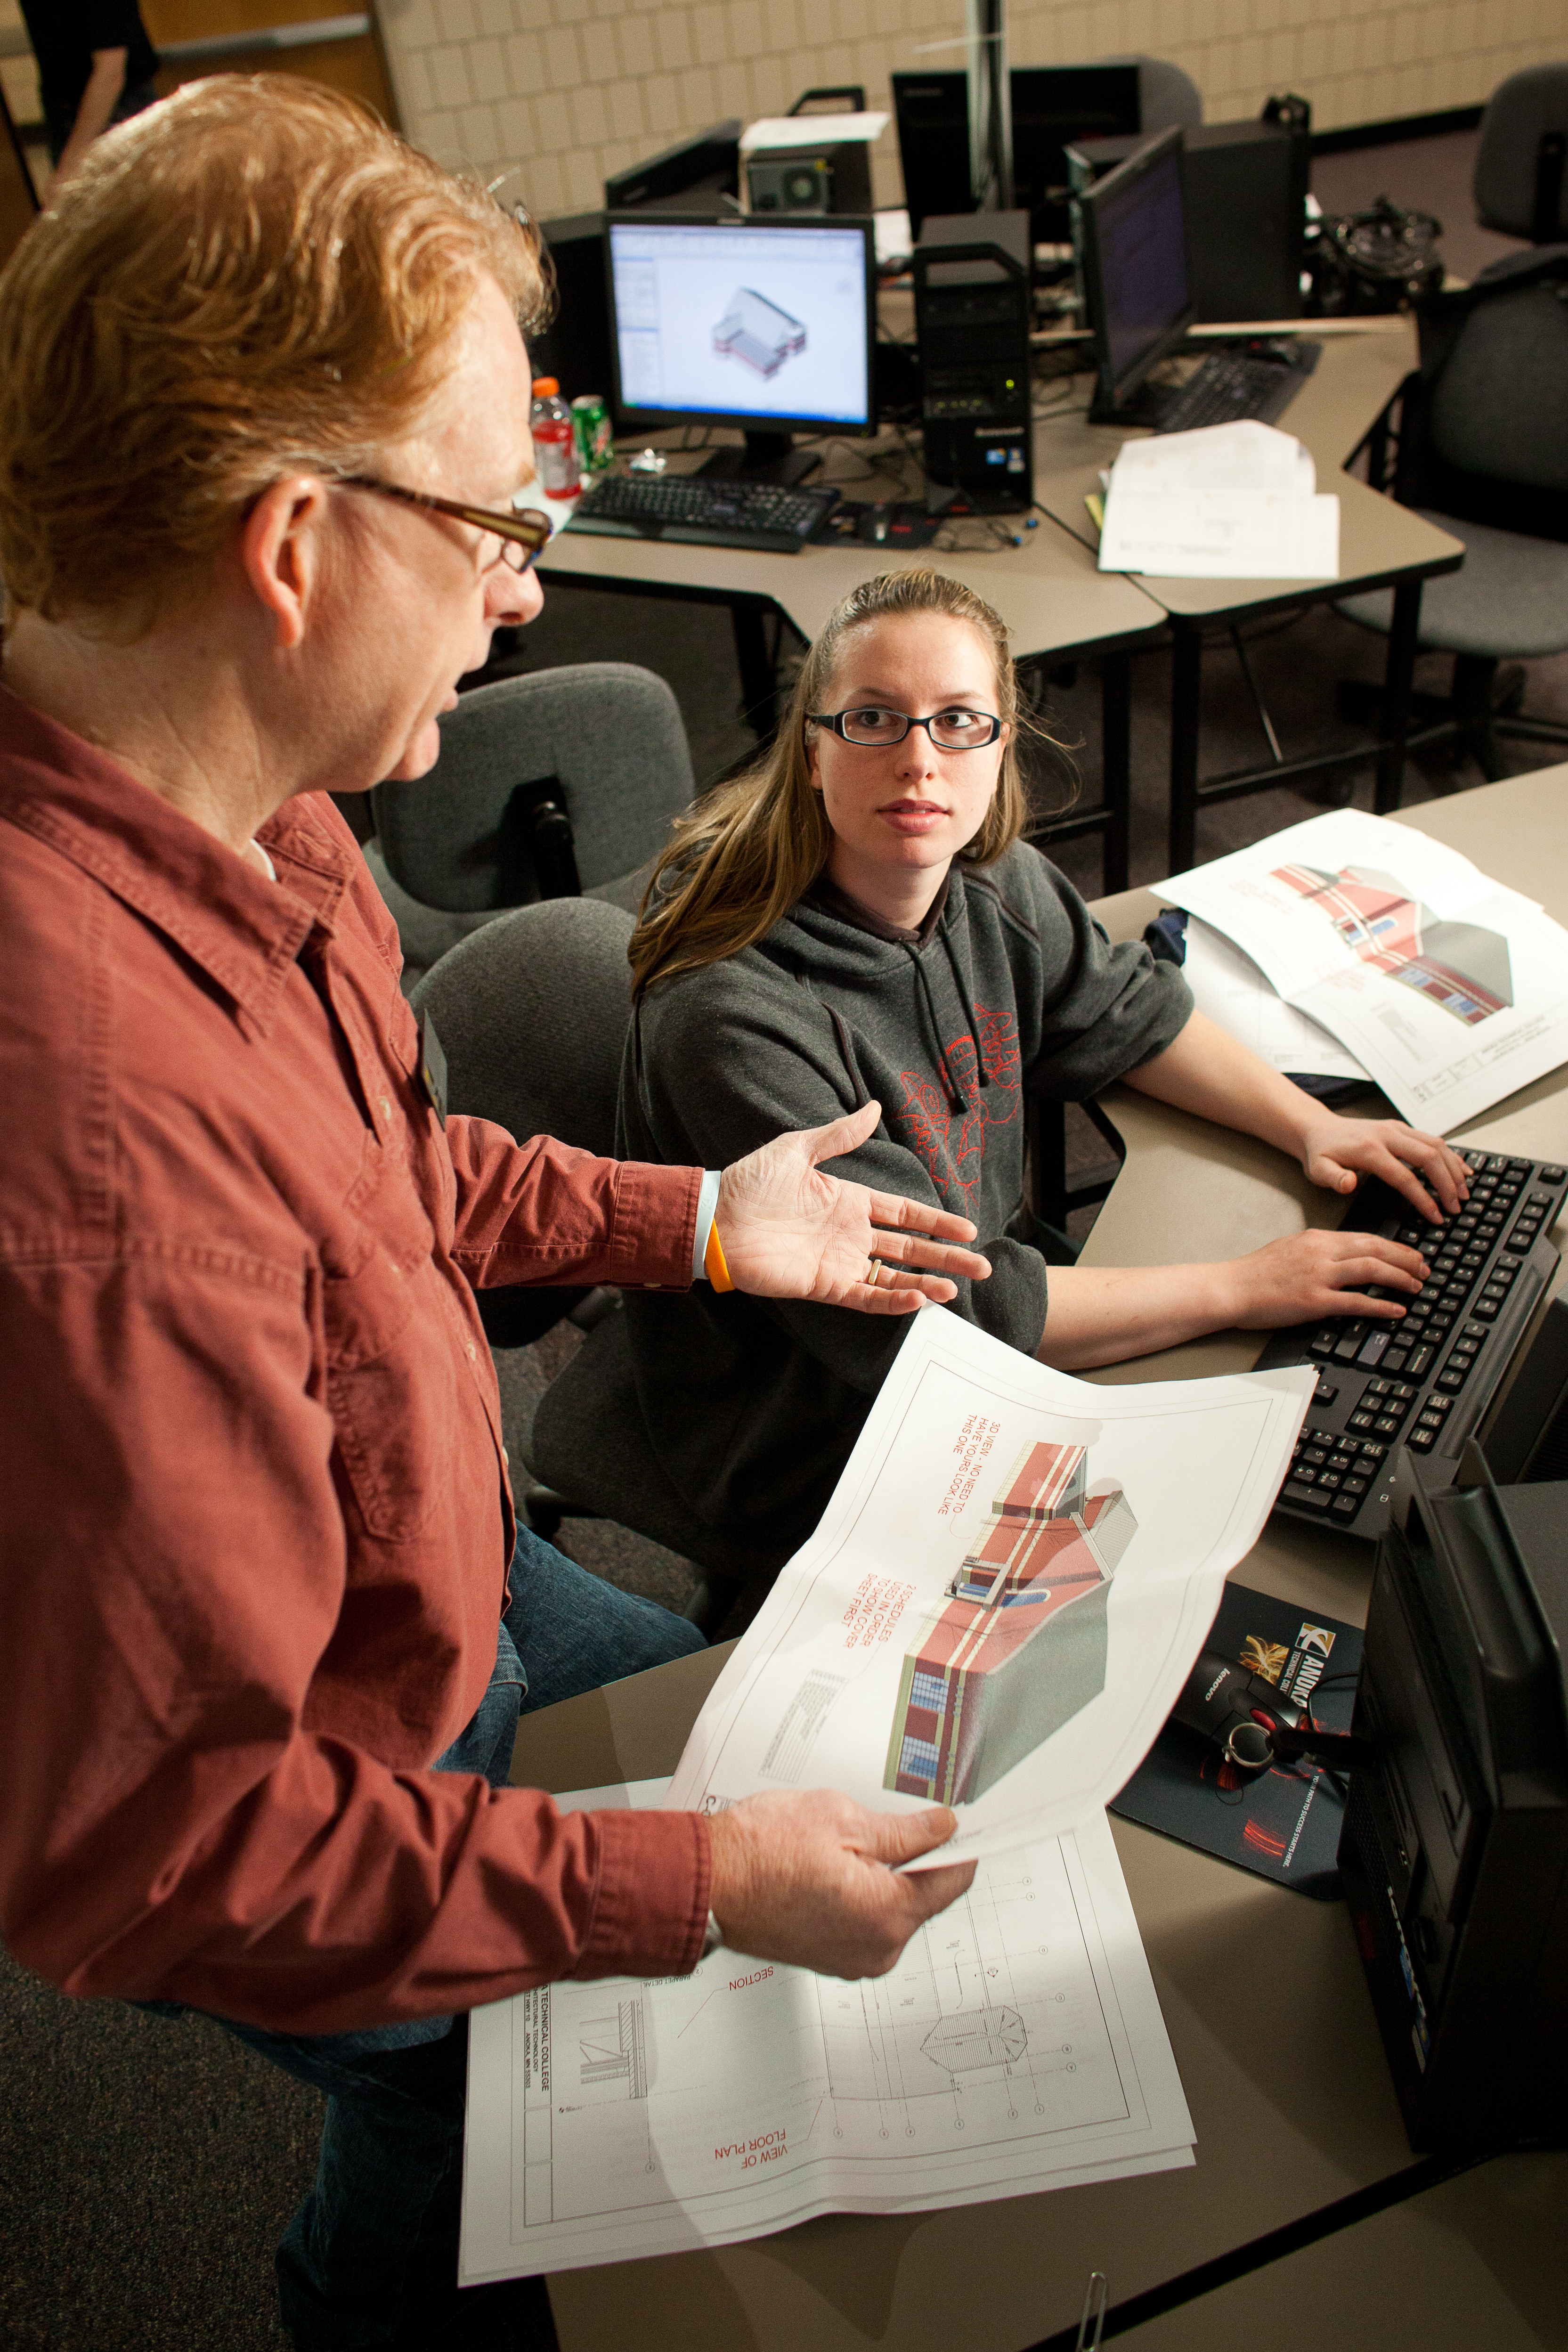 college offers architectural and construction estimating night courses construction rebounding from the economic recession anoka technical college is adding evening programming for its architectural technology degree